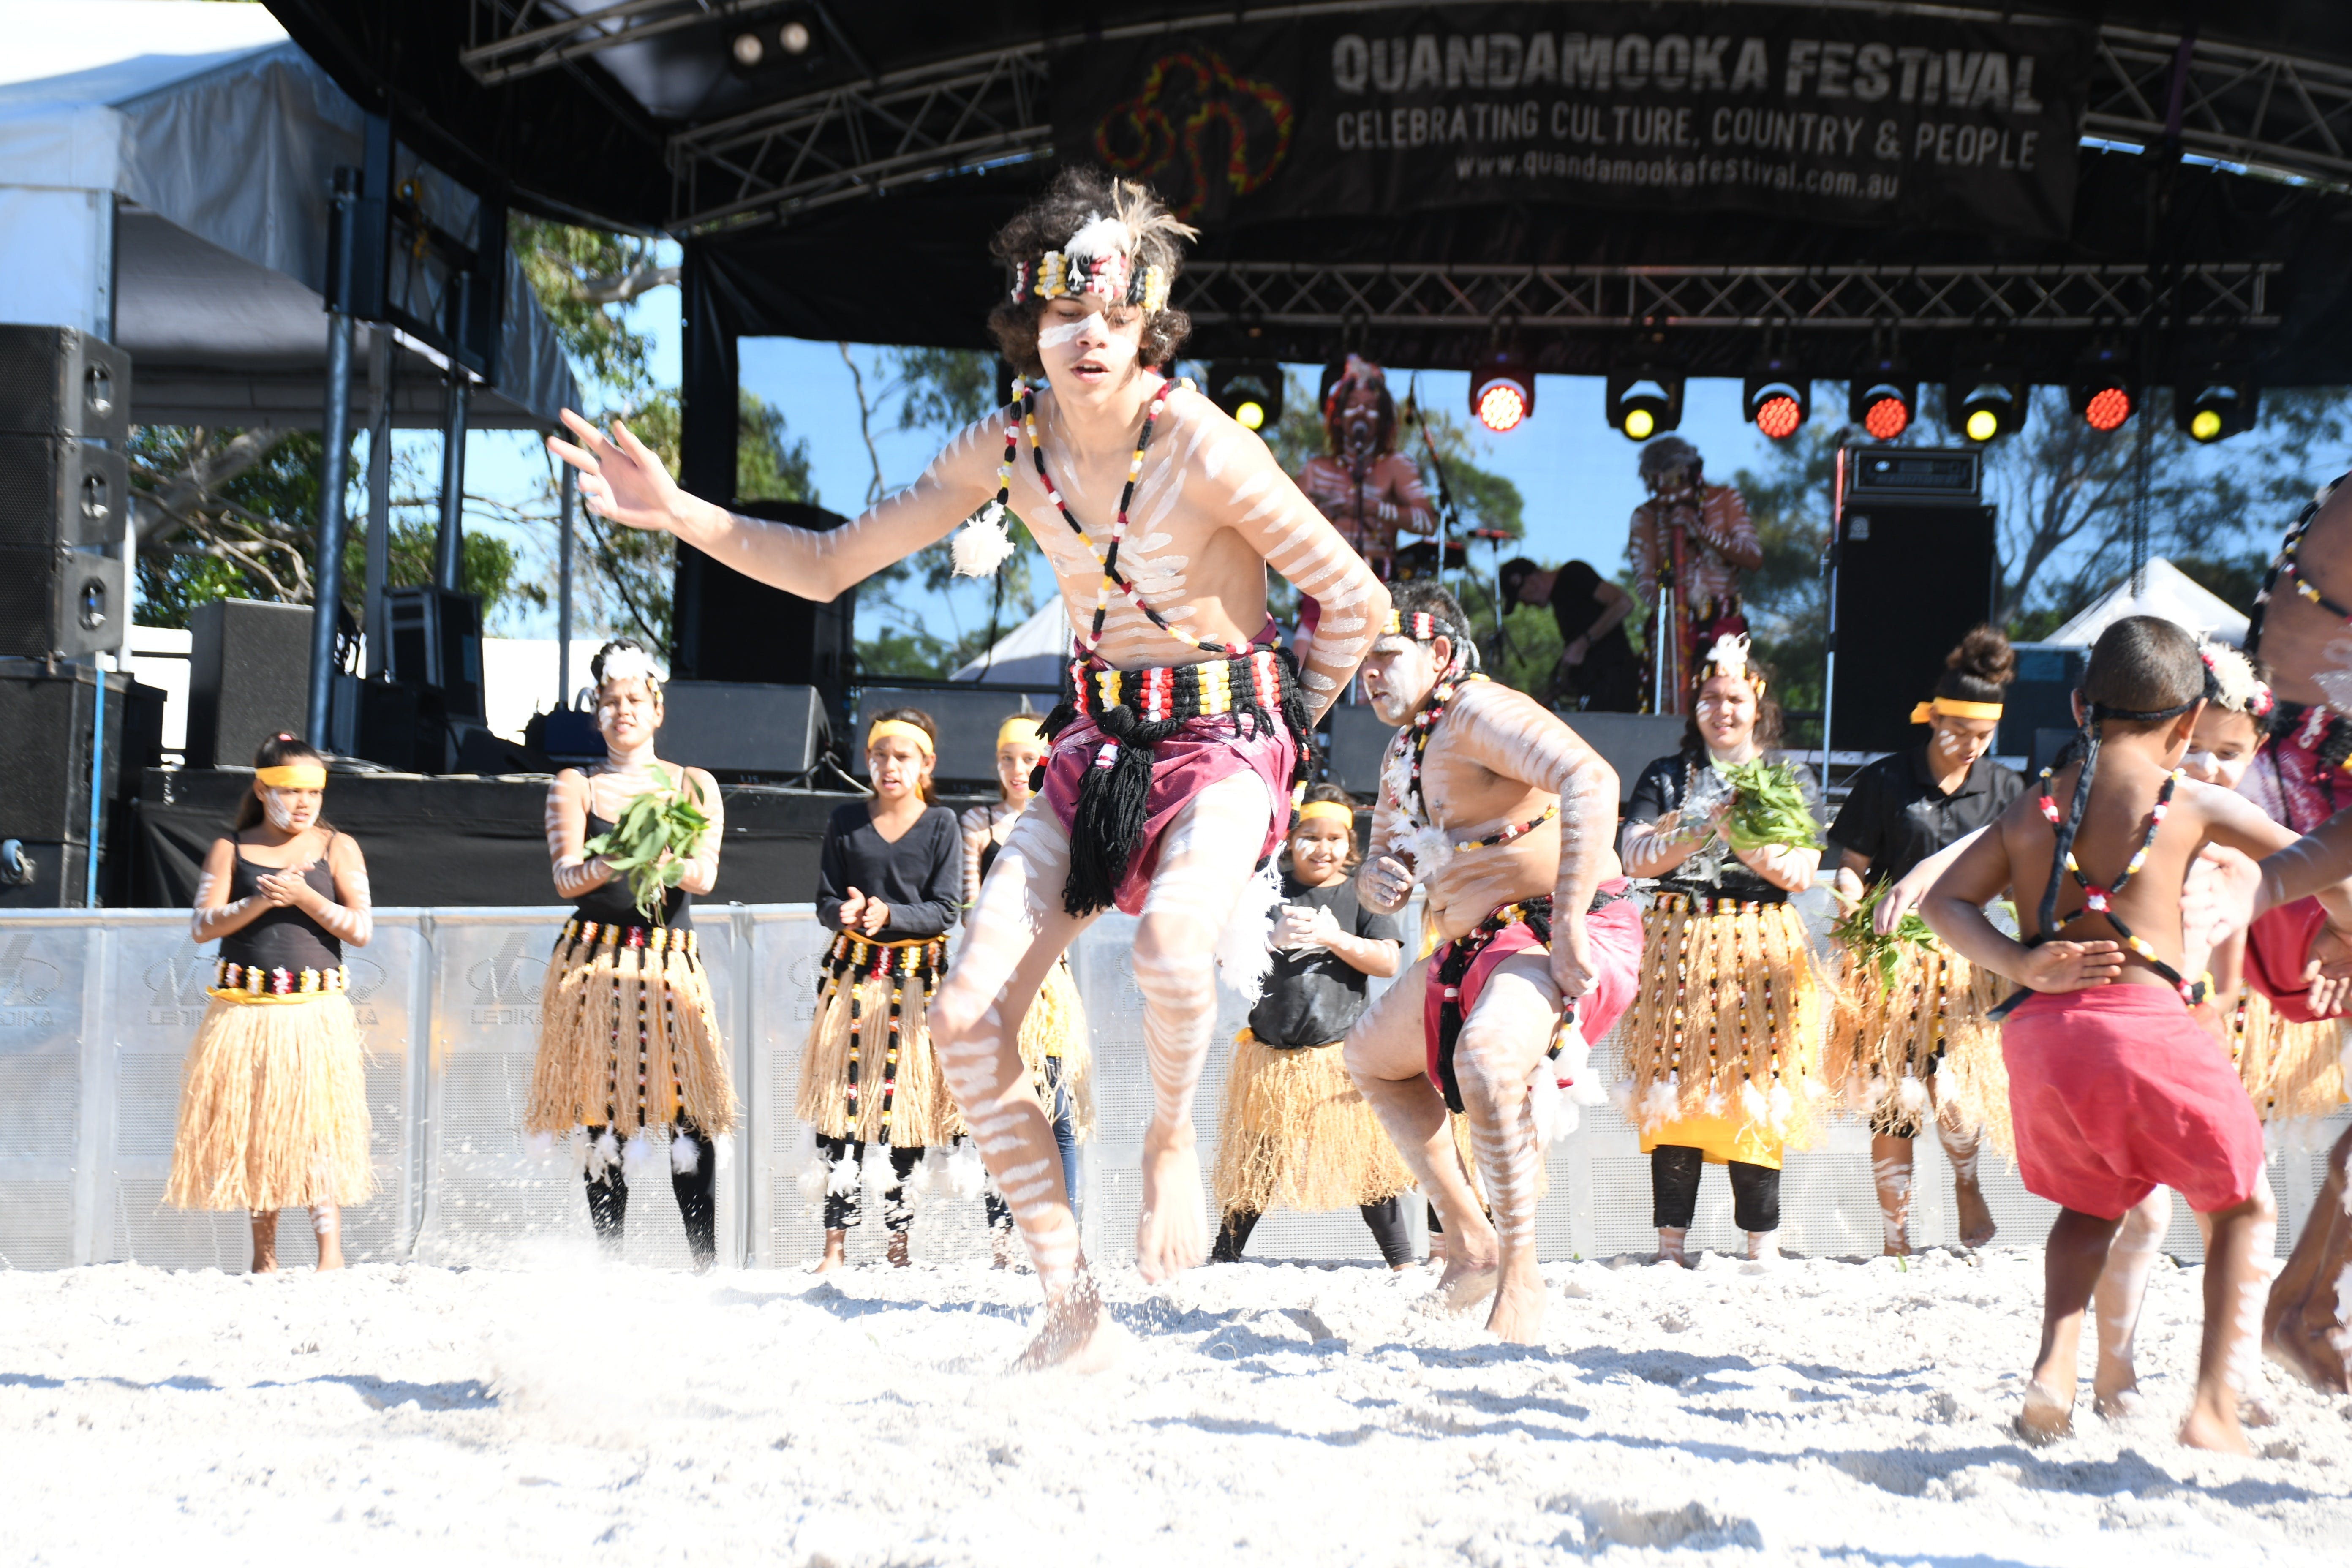 Quandamooka Festival 2021 - Accommodation Tasmania